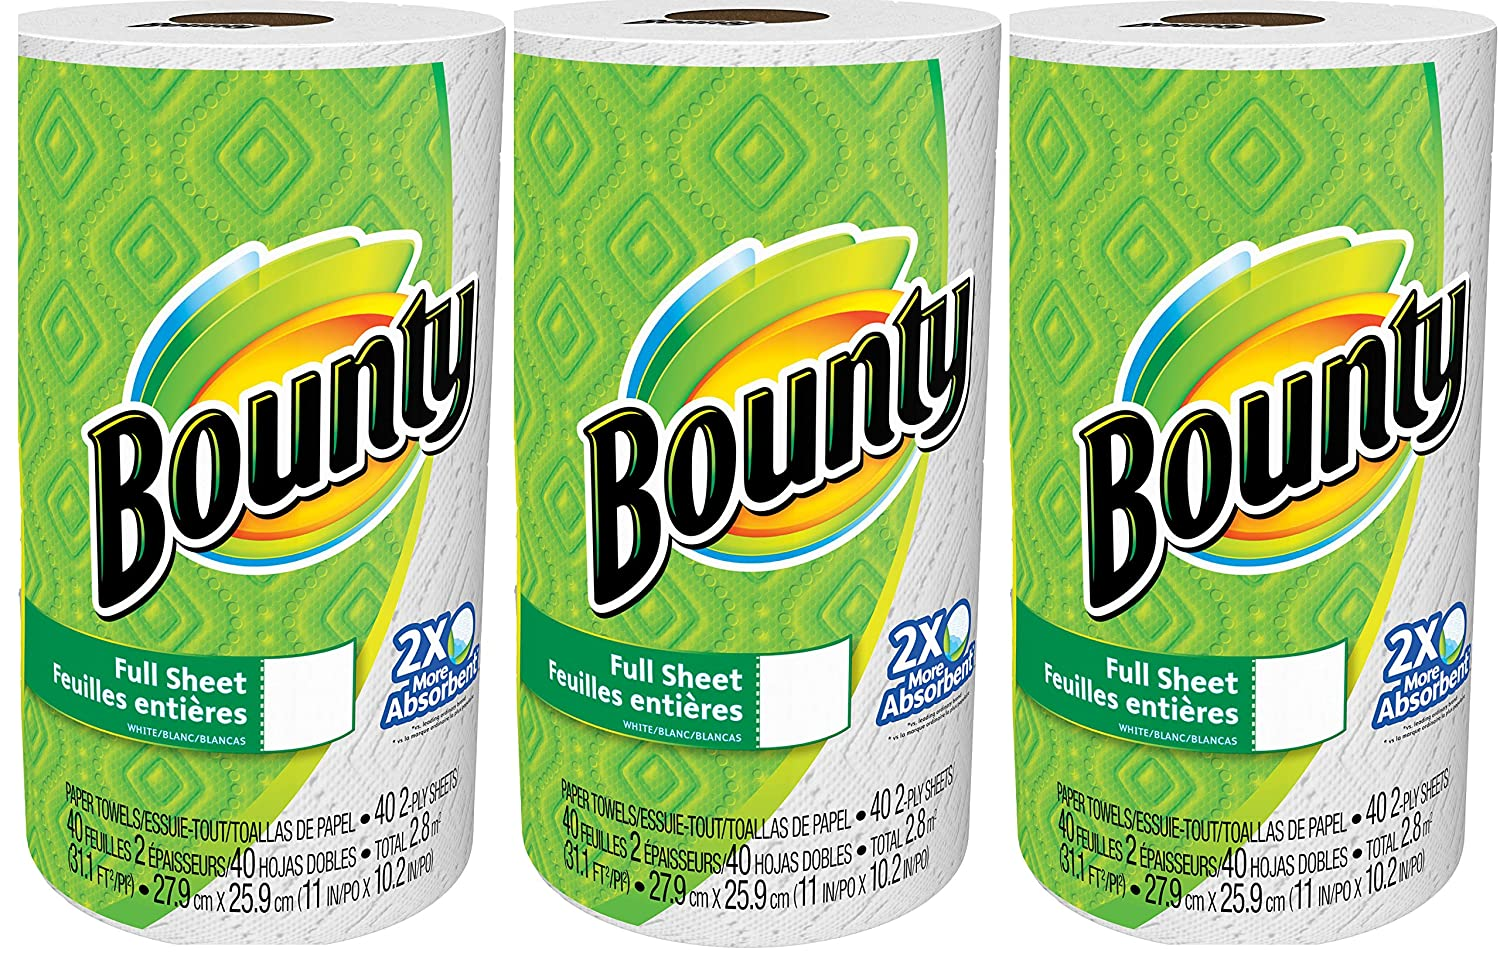 Amazon.com: Bounty Paper Towels, White, 3 Rolls, 40 Sheets Each: Health & Personal Care